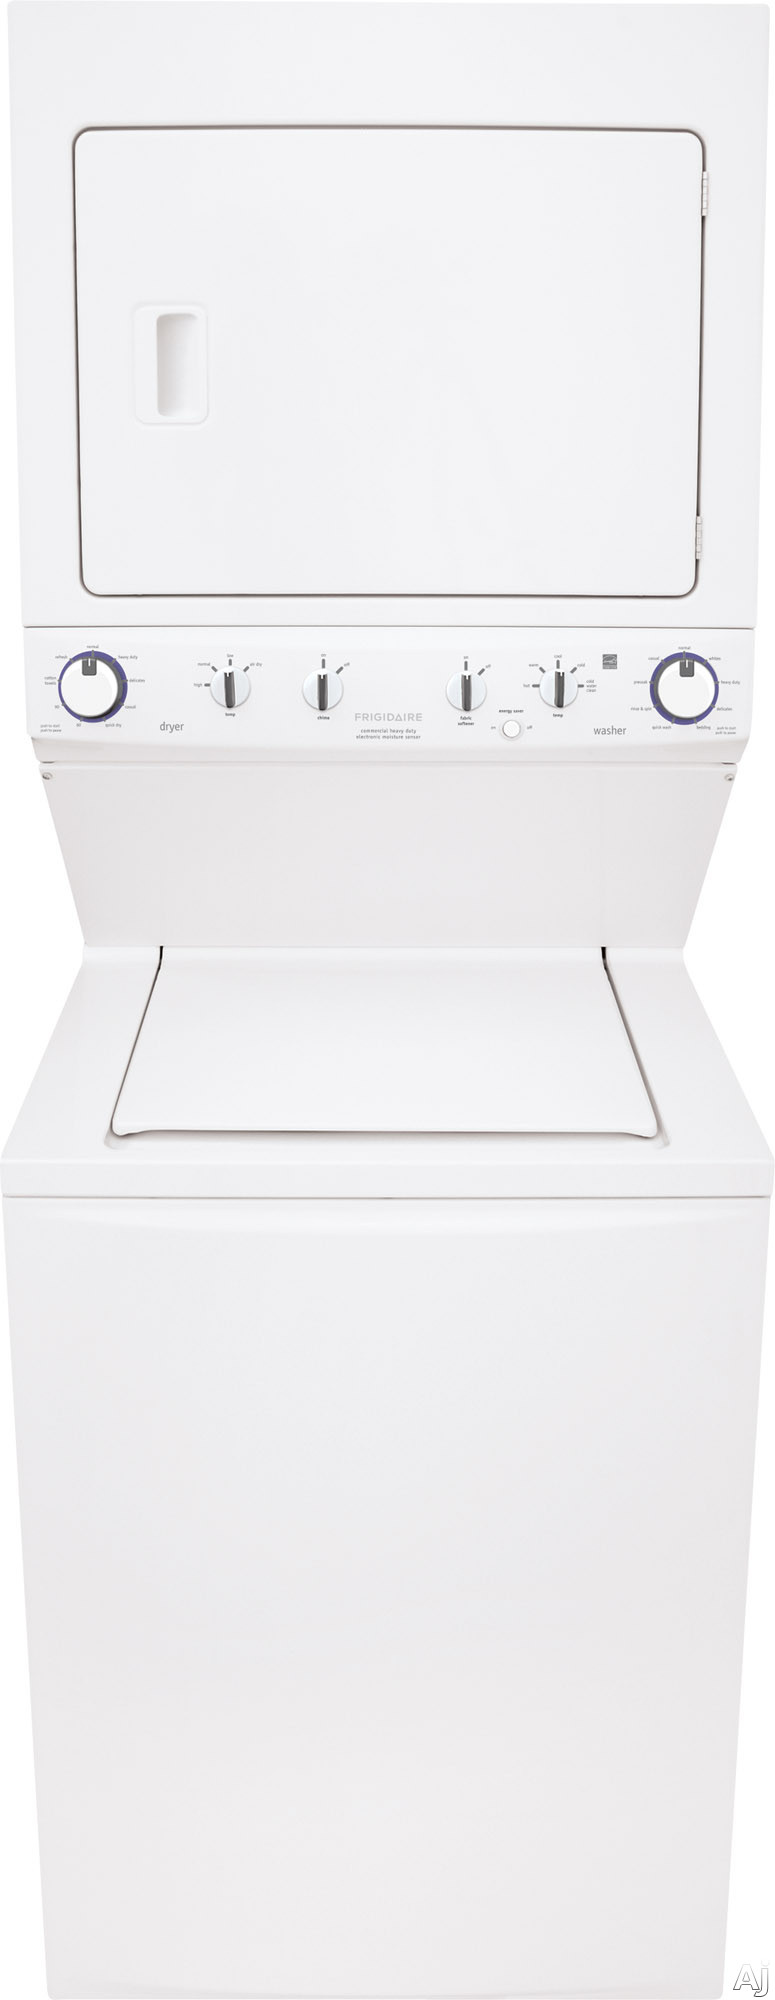 Frigidaire FFLG4033Q 27 Inch Gas Laundry Center with 3.8 cu. ft. Washer, 5.5 cu. ft. Dryer, ENERGY STAR, 9 Wash Cycles, 9 Dry Cycles, Quick Cycle, Pre-Soak, Fabric Softener Dispenser and Moisture Sensors